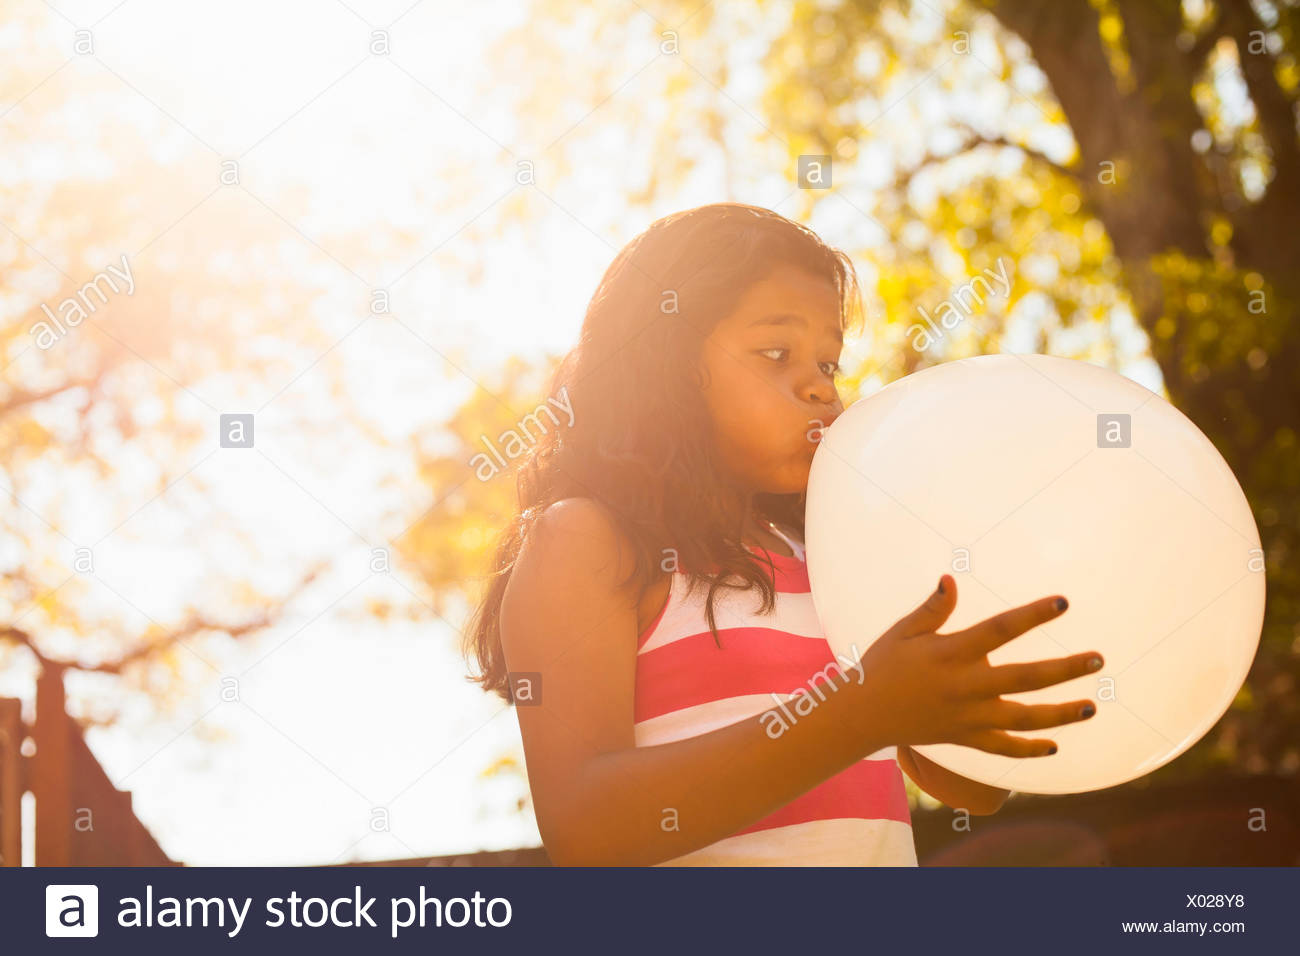 Girl Blowing up balloon in garden Photo Stock